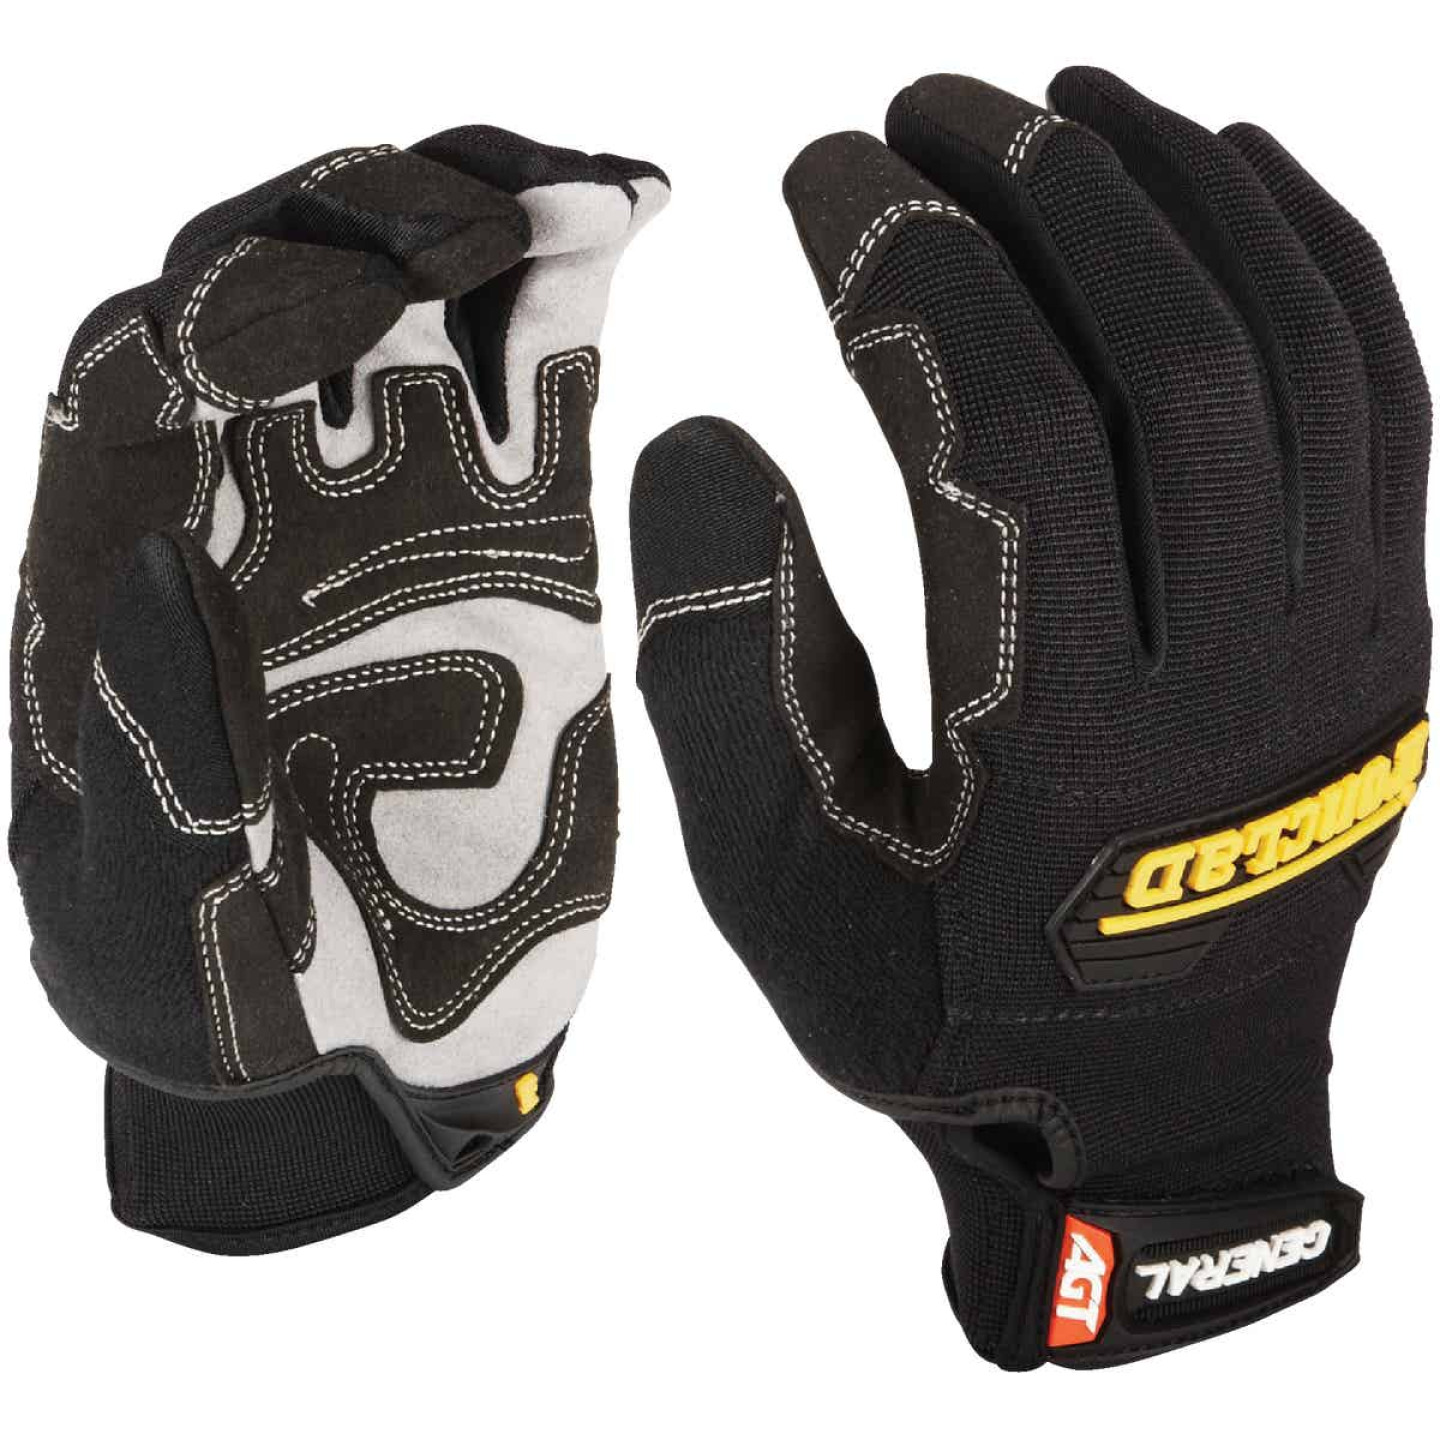 Ironclad General Utility Men's Large Synthetic Suede High Performance Glove Image 3